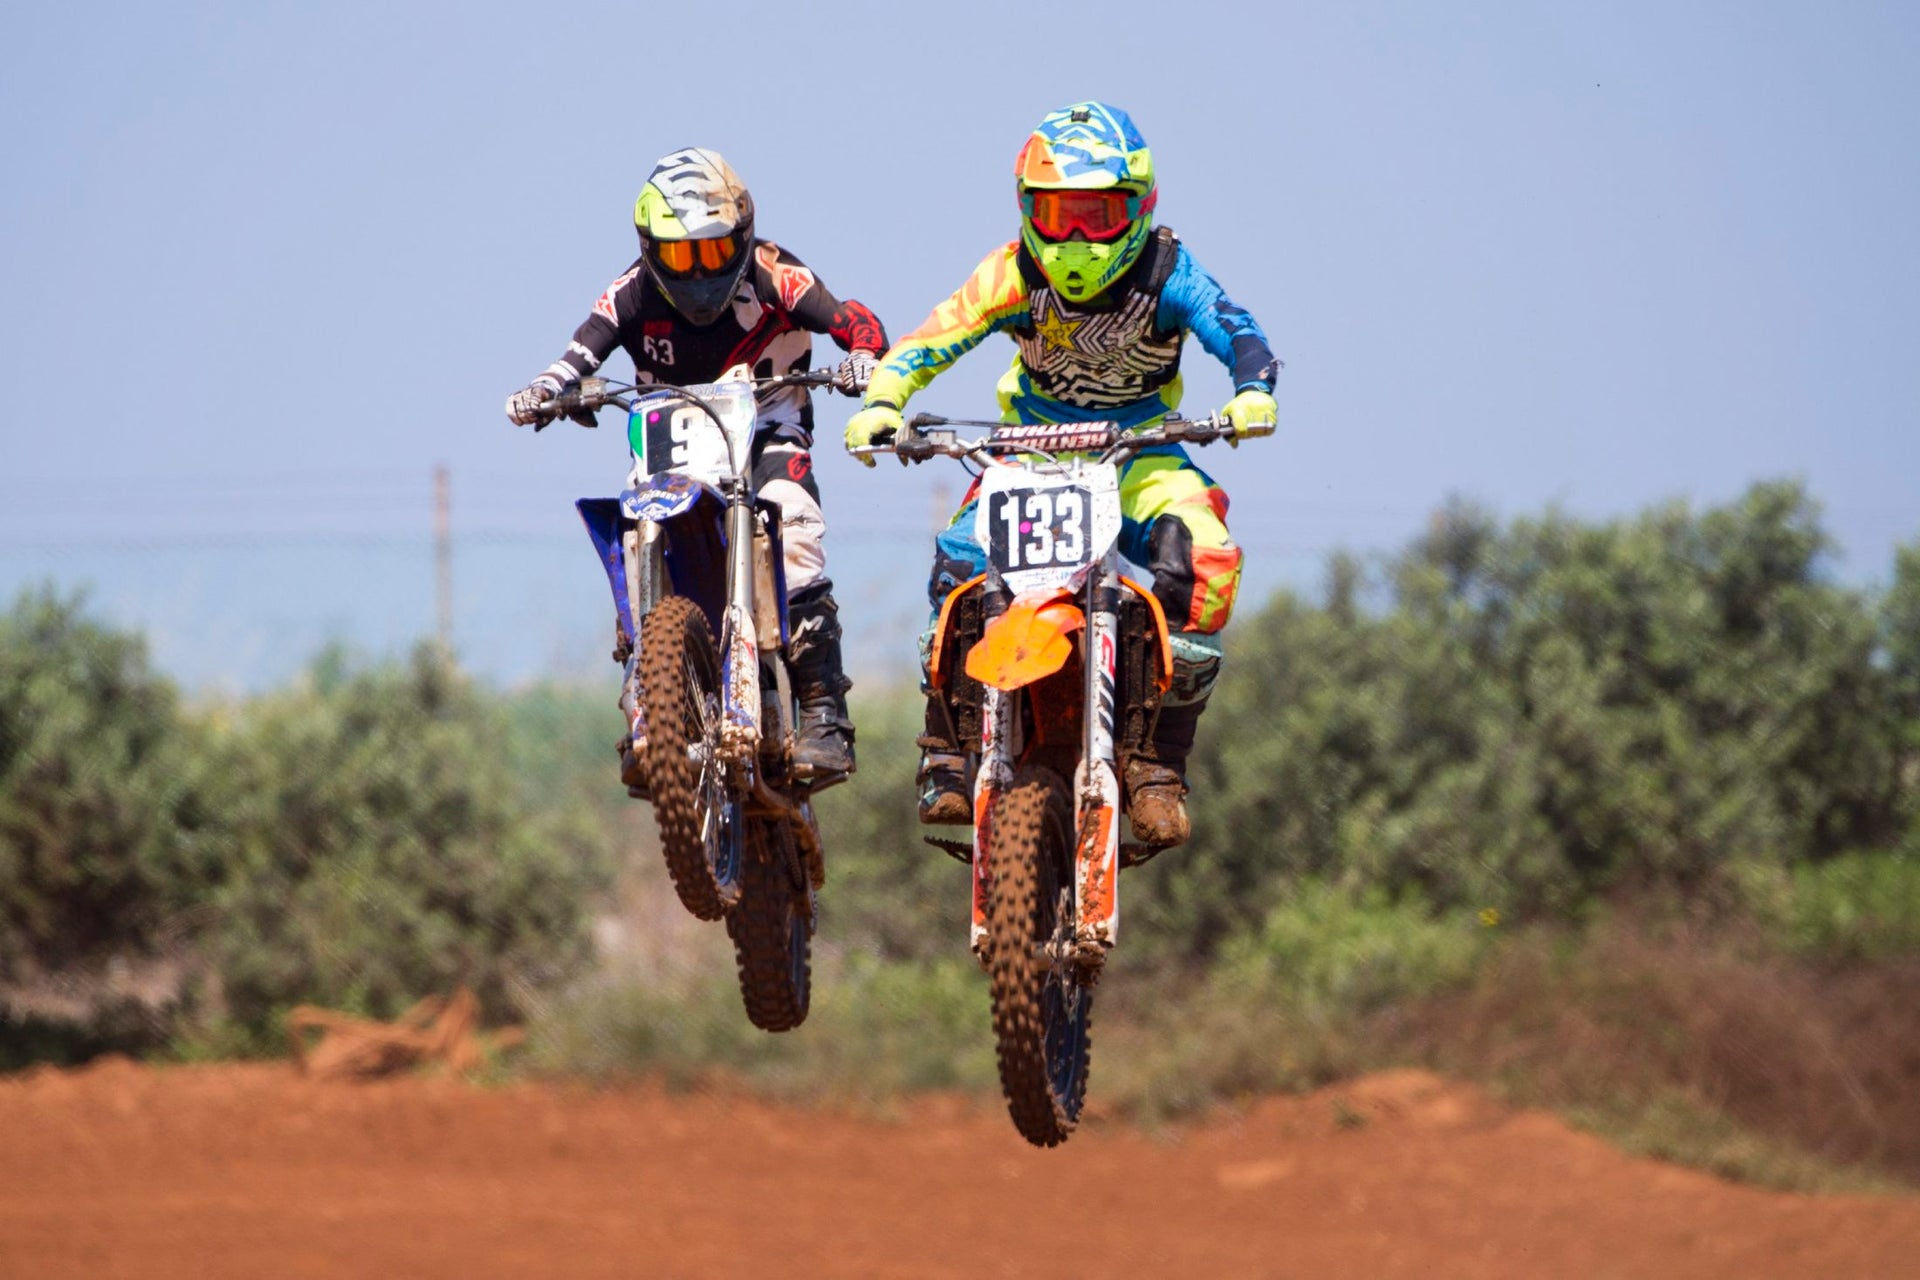 Riders compete during Israel's motocross championship in the MX Wingate cross country race track near in Netanya, Israel, Saturday, April 14, 2018.